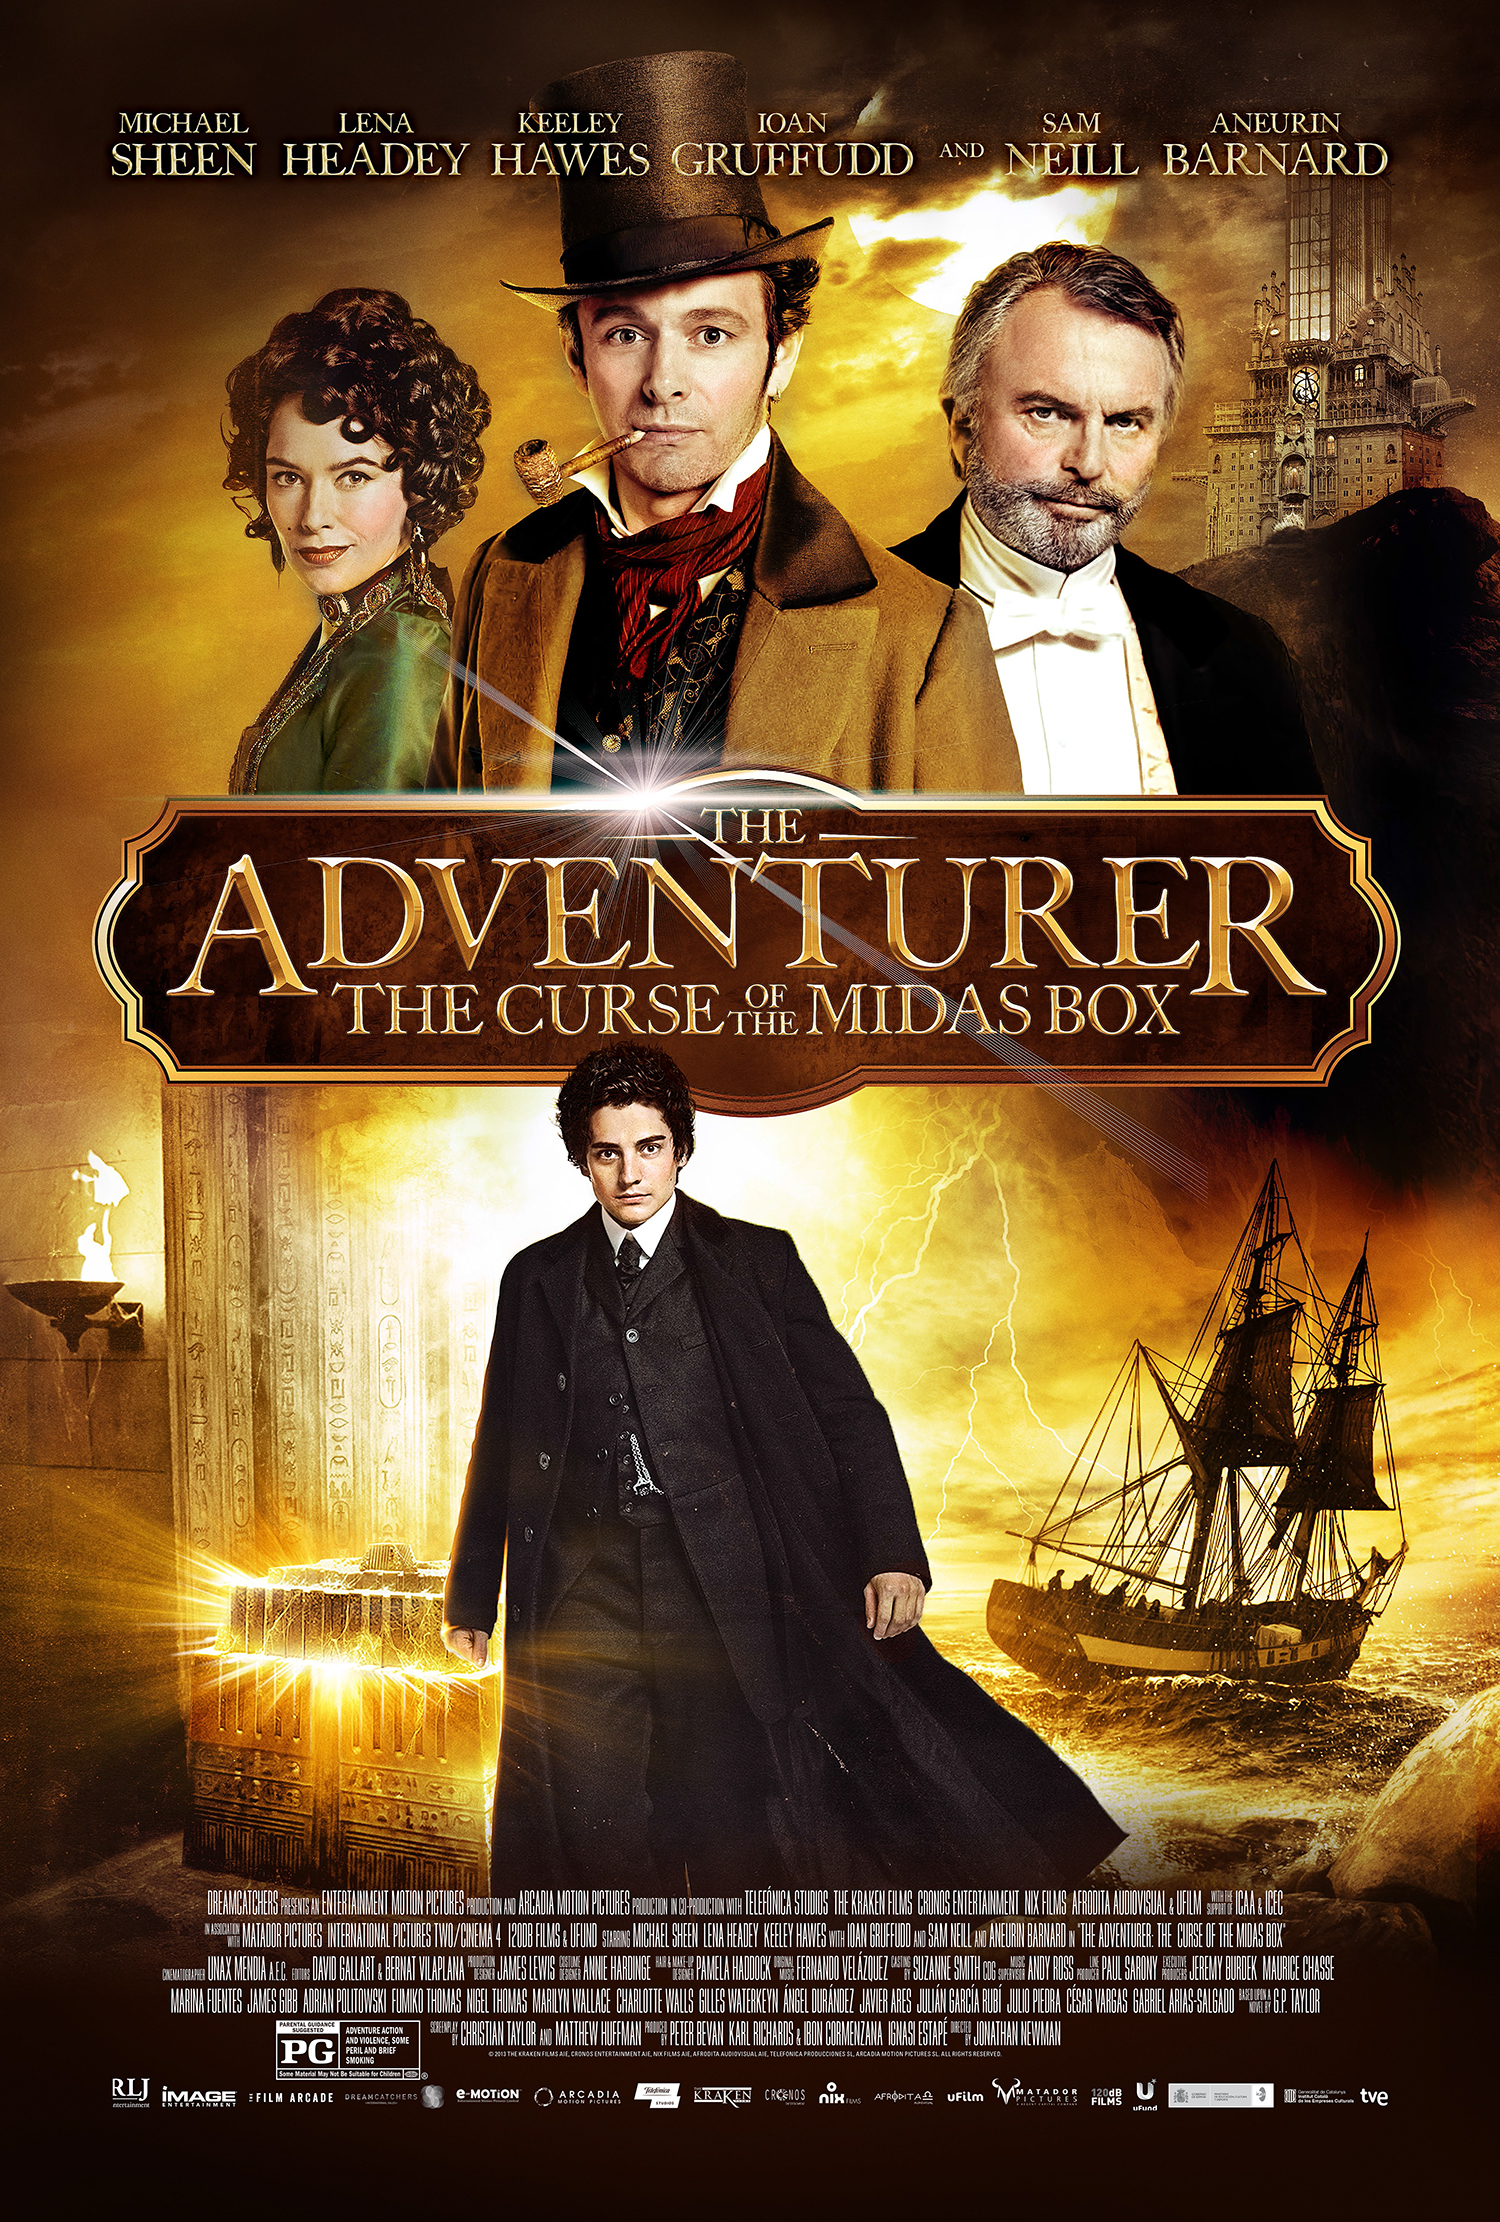 The-Adventurer:-The-Curse-of-the-Midas-Box-Poster